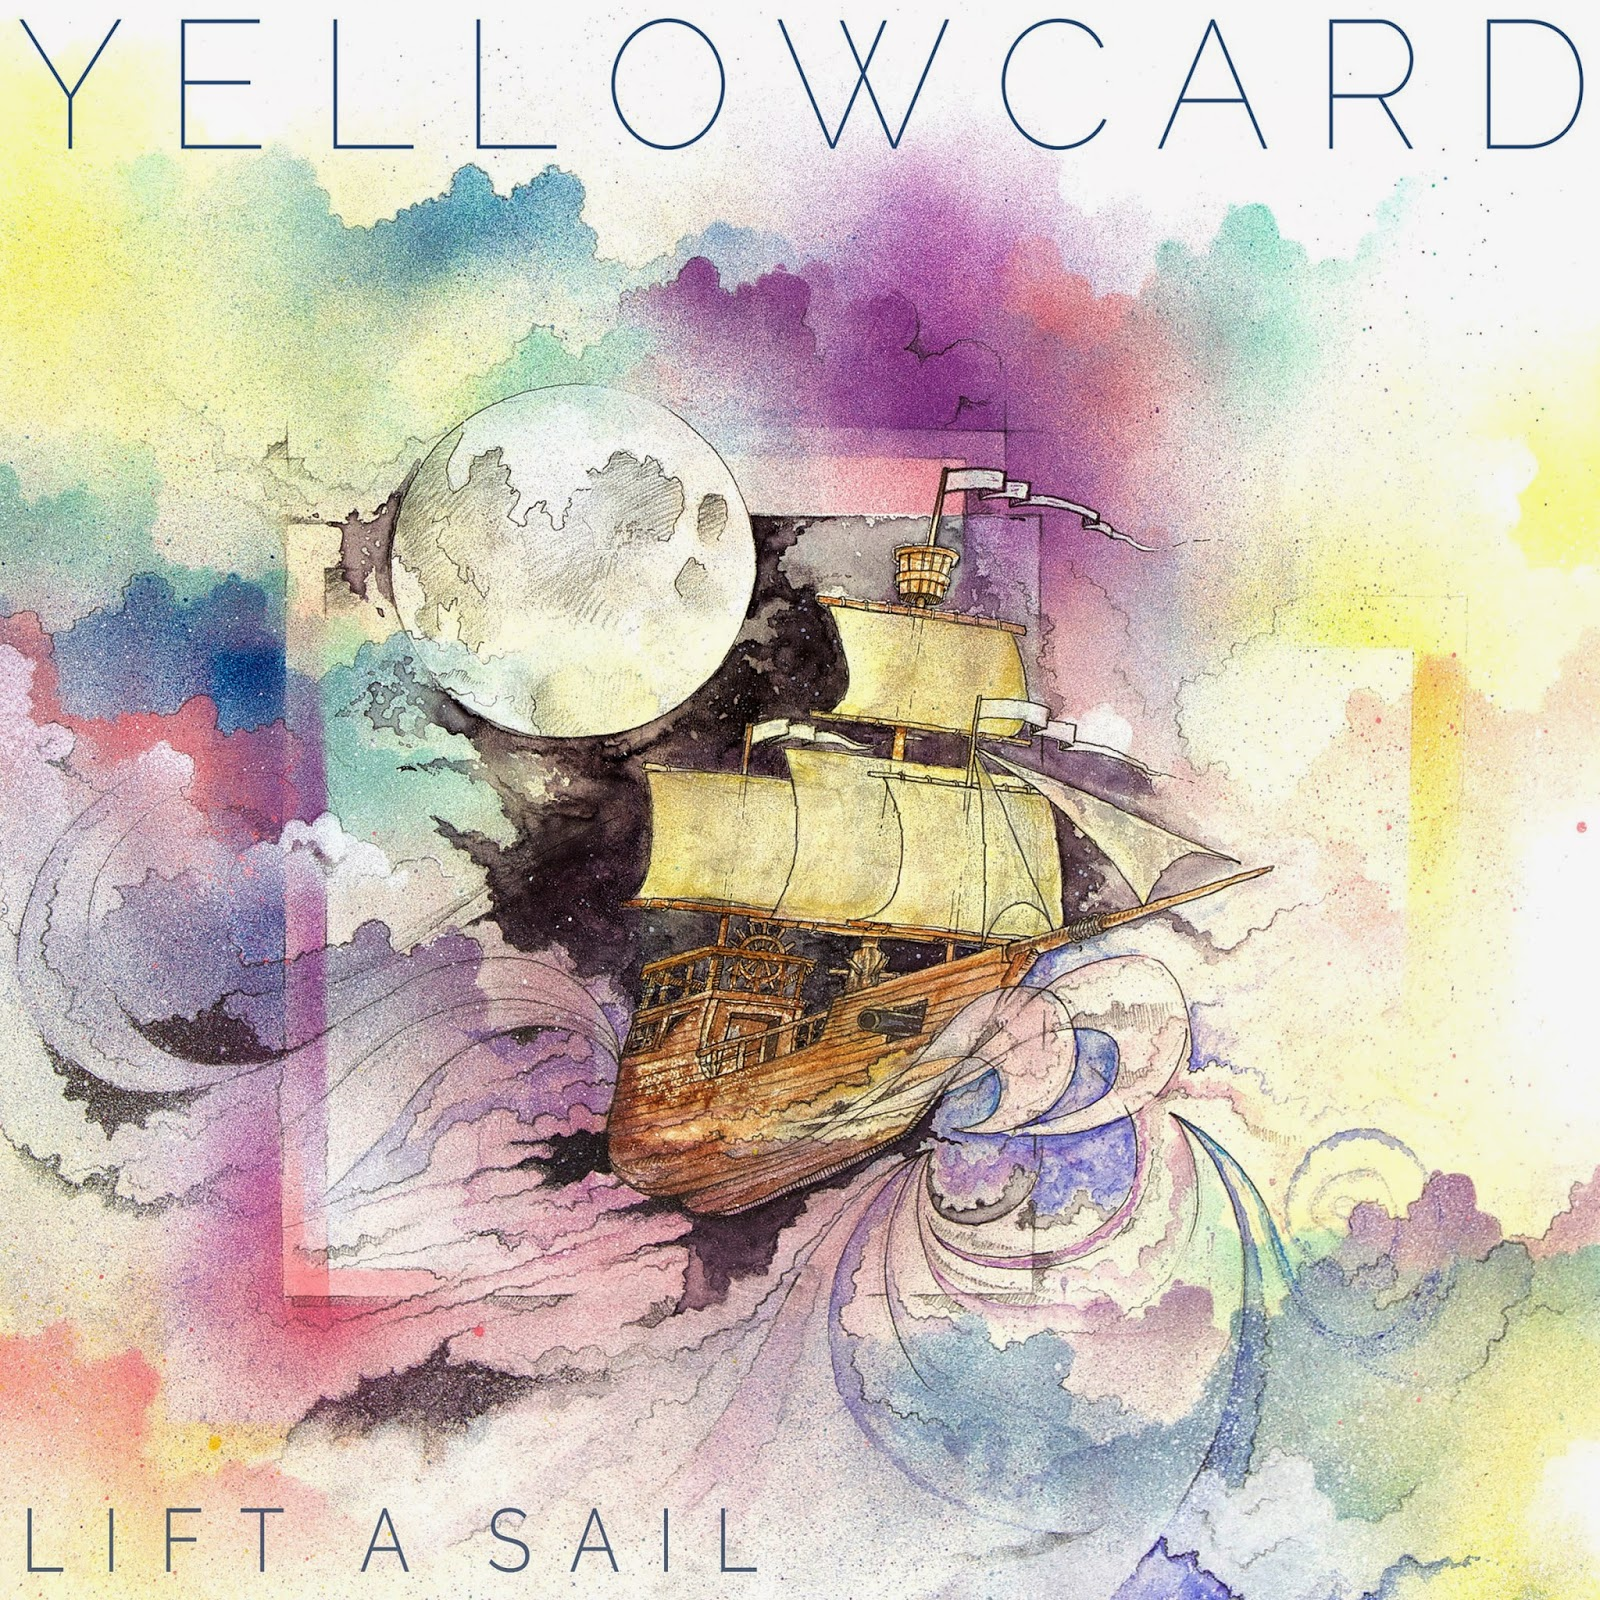 Yellowcard Lift a Sail Chronique Album Critique Review Rock'n'live 2014 Pop Punk Rock Ryan Key Make Me So One Bedroom Razor & Tie